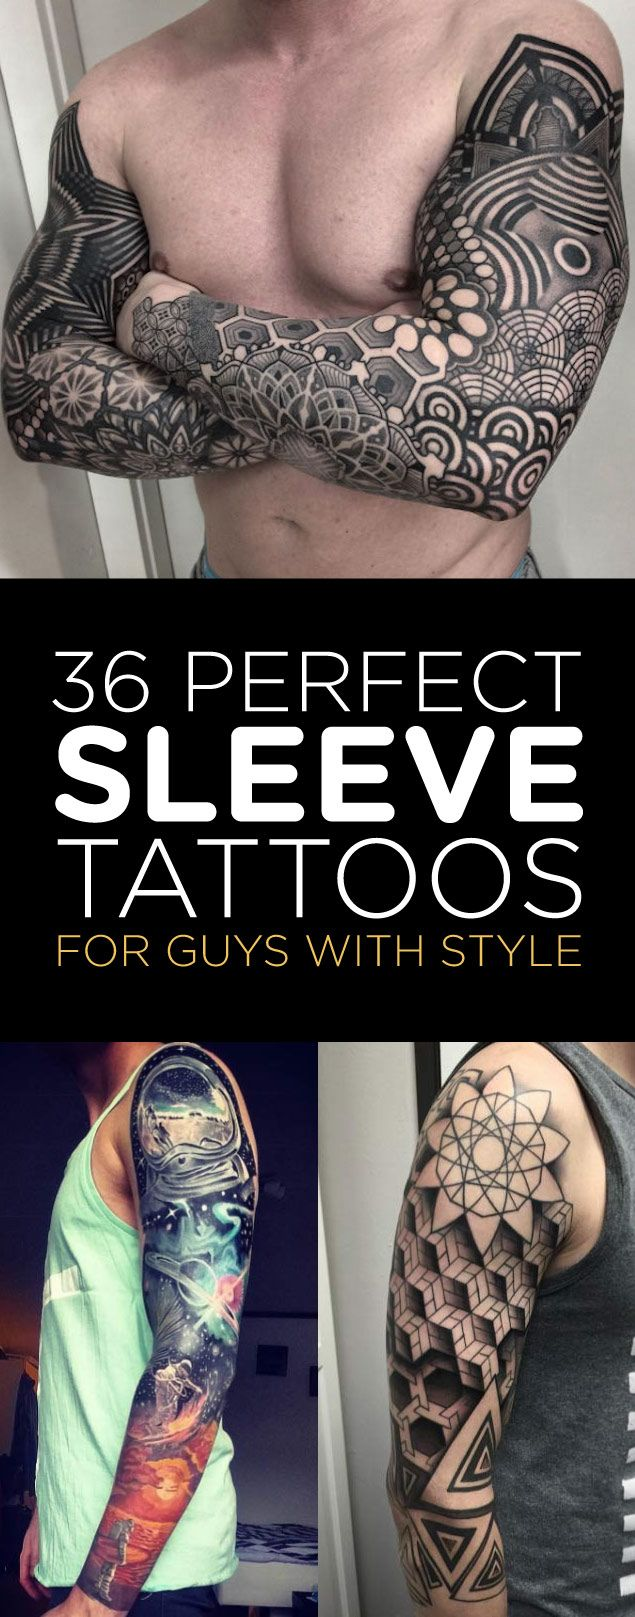 27 leg sleeve tattoo designs ideas design trends - 36 Perfect Sleeve Tattoos For Guys With Style